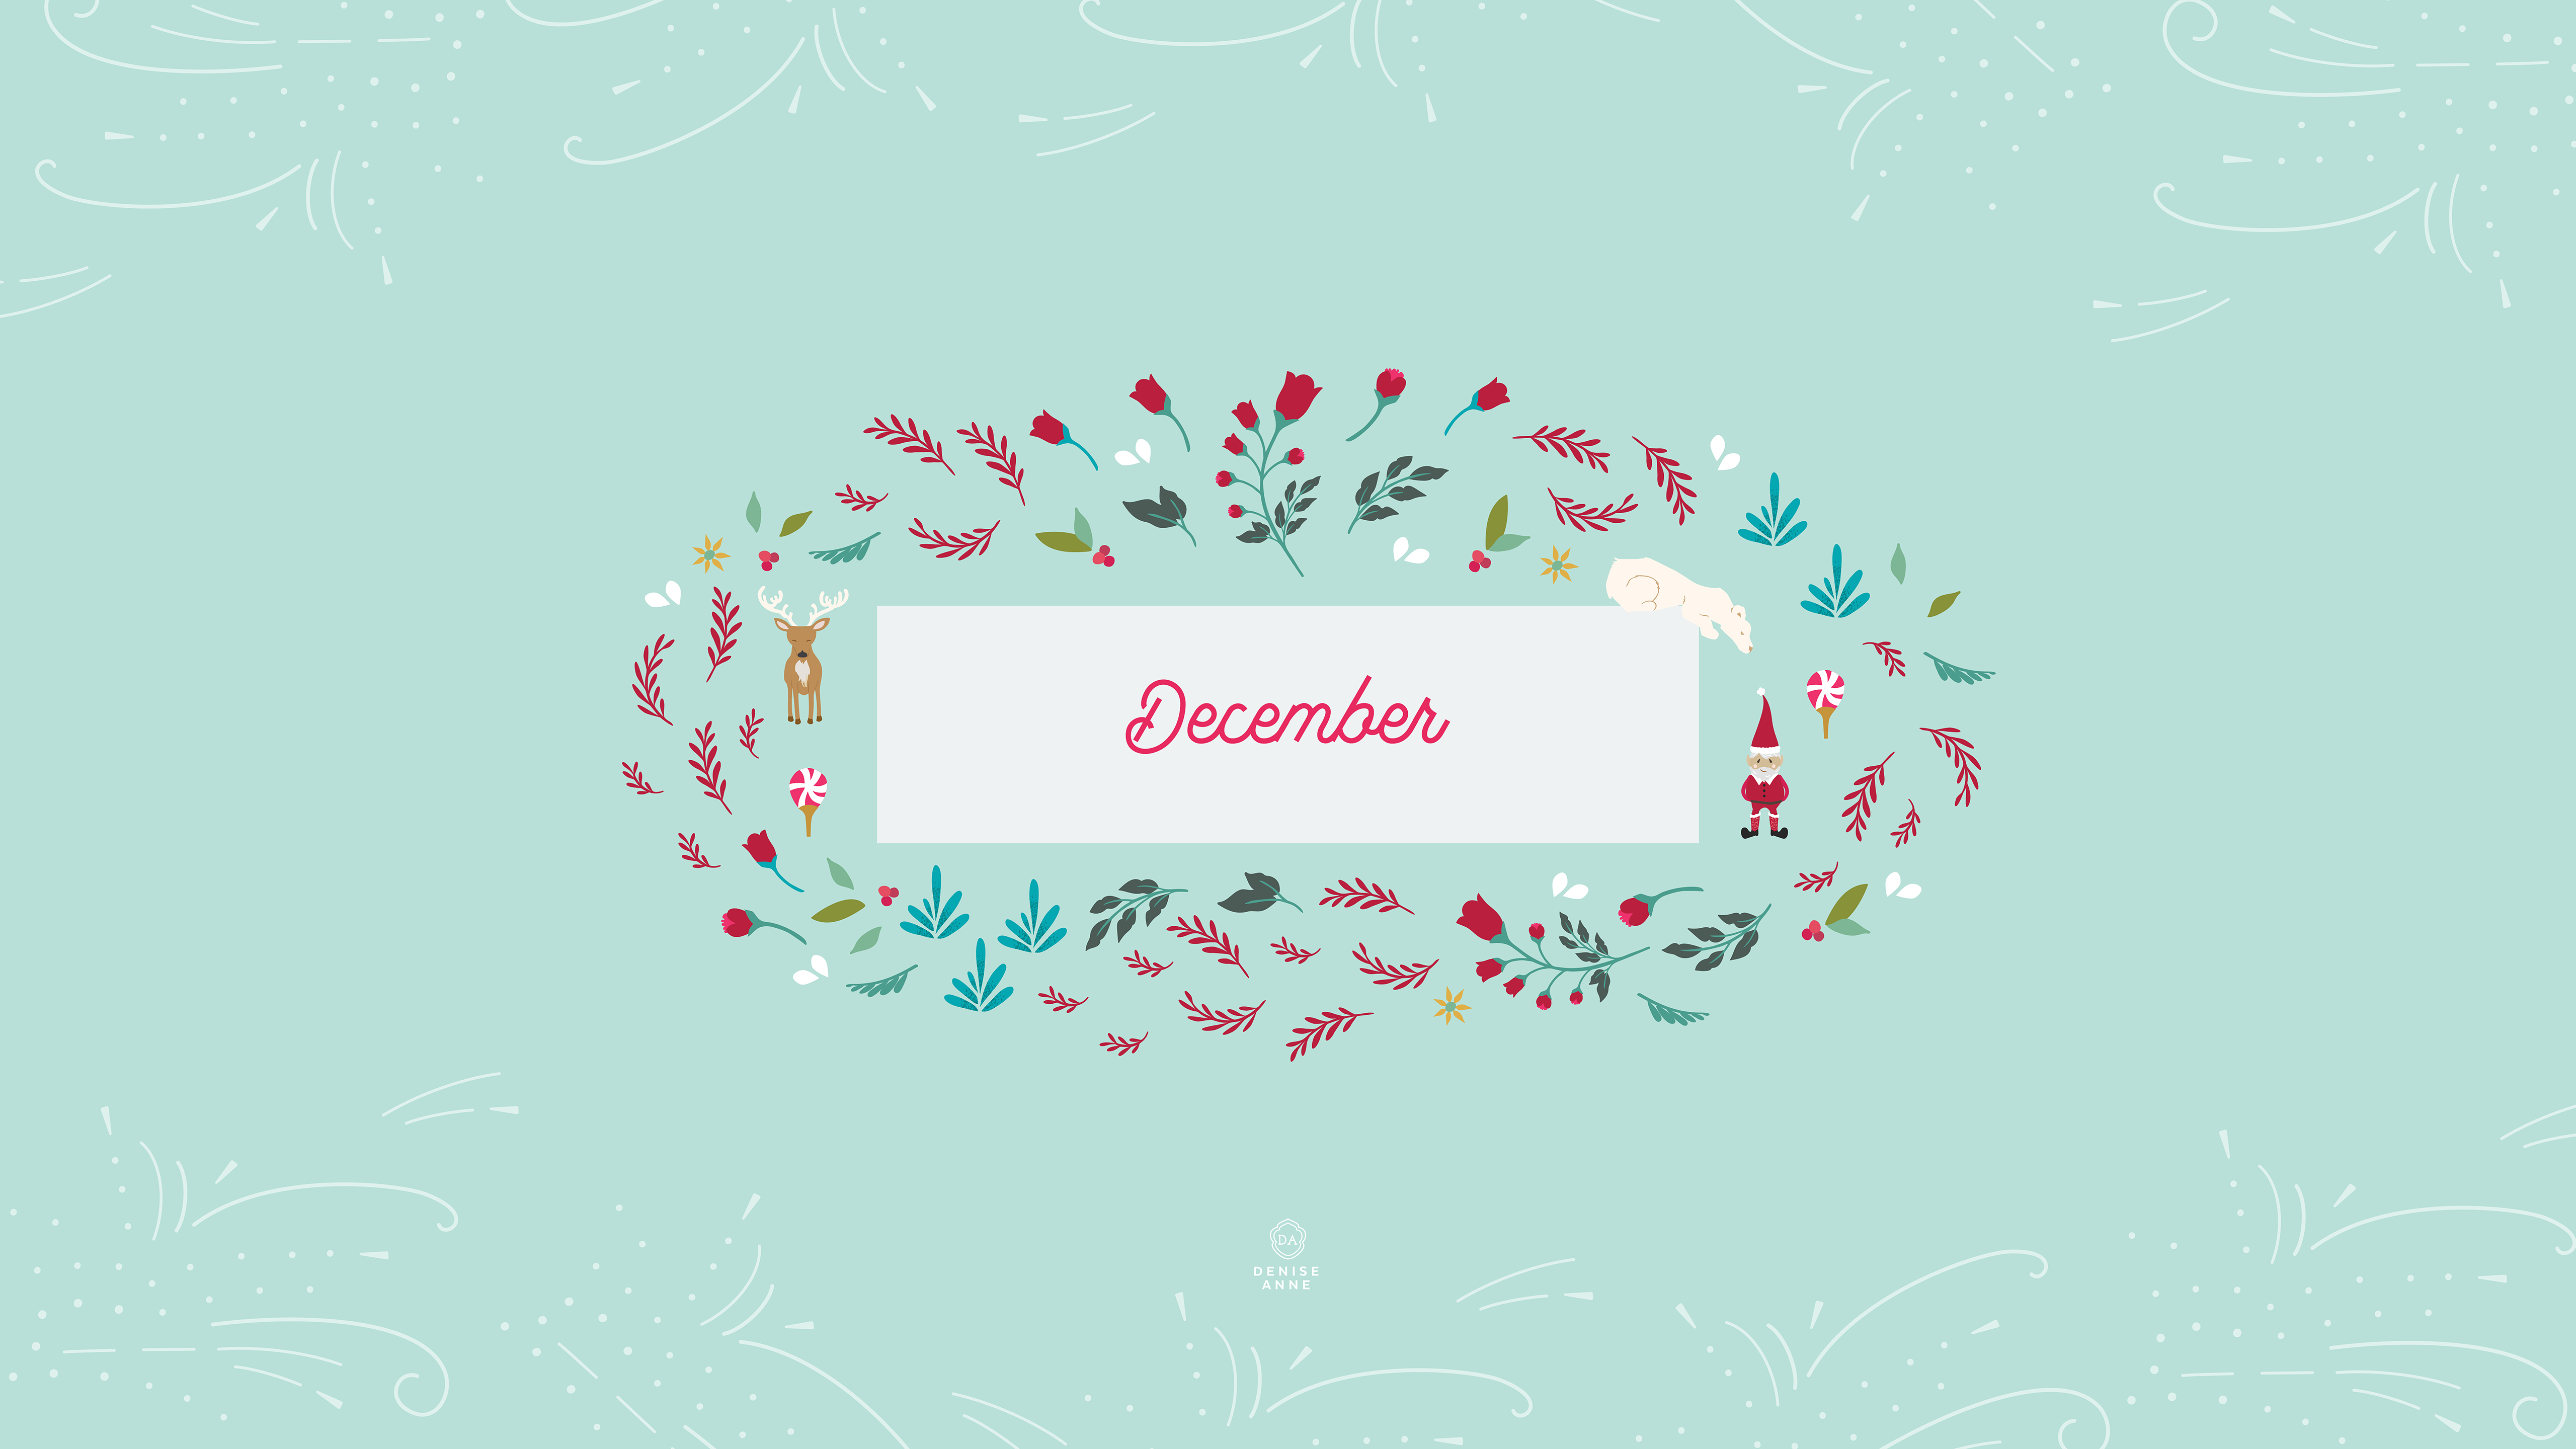 Free Christmas Desktop Wallpapers